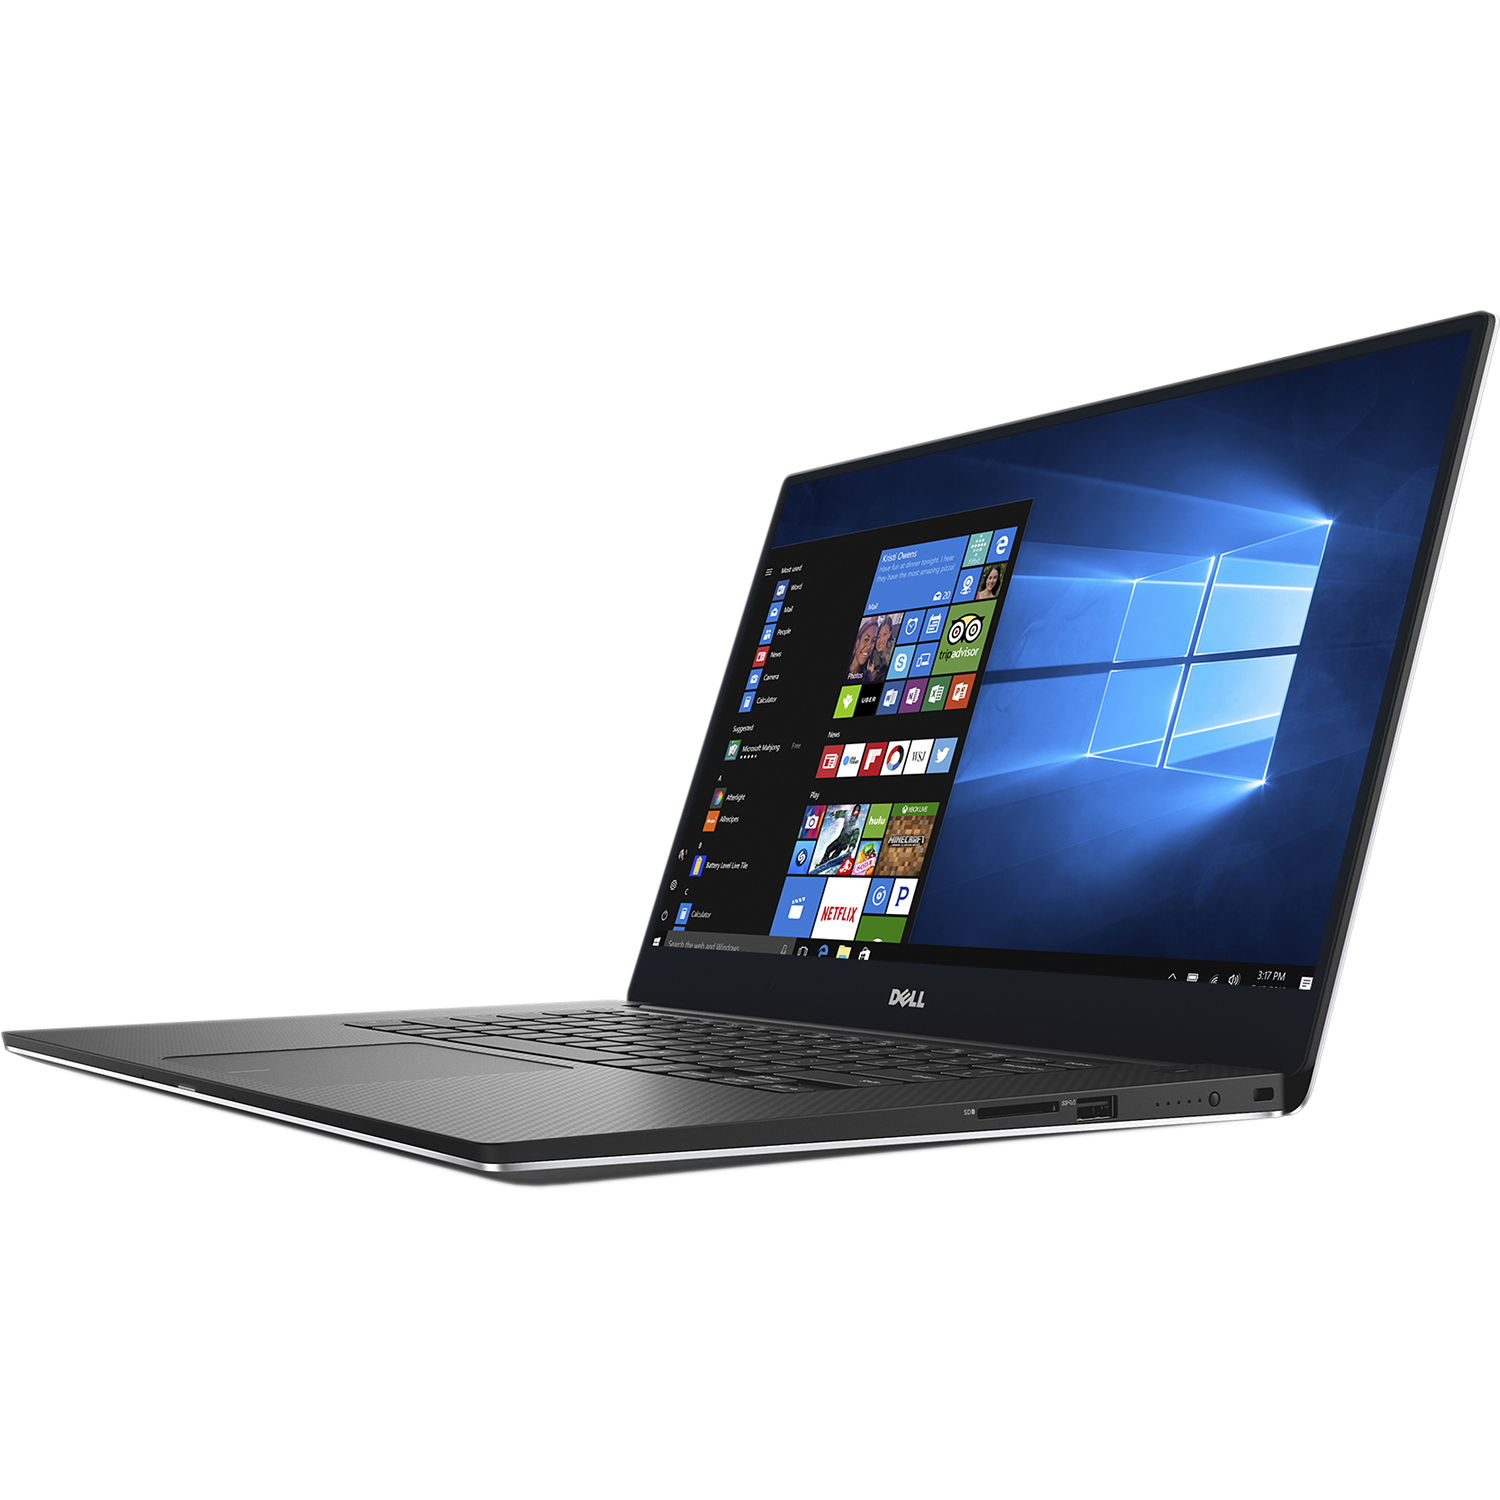 dell i3552 15.6 review